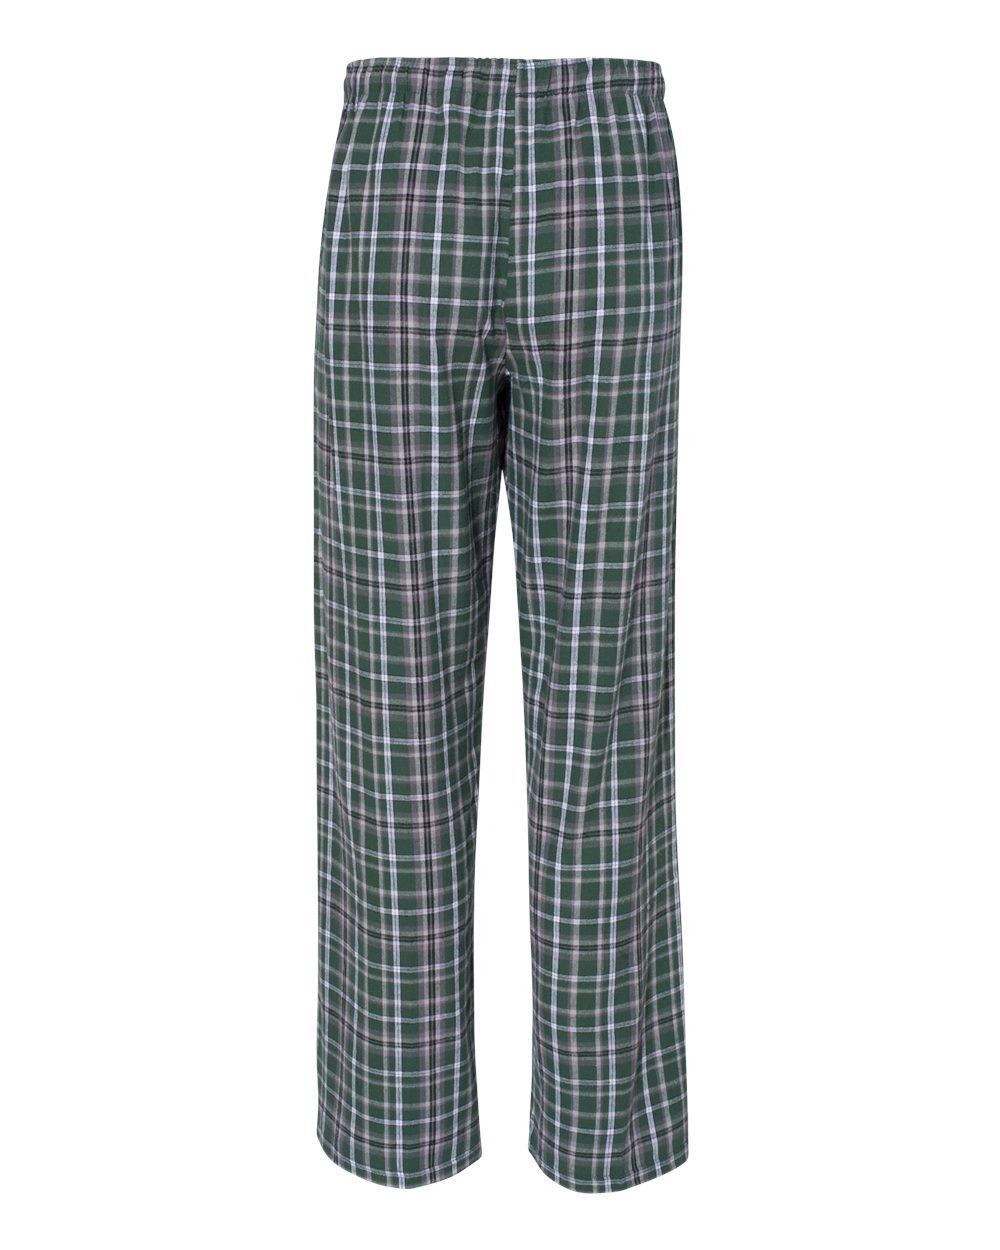 Boxercraft-Unisex-Flannel-Pants-With-Pockets-Pajama-Pants-F20-up-to-2XL thumbnail 19